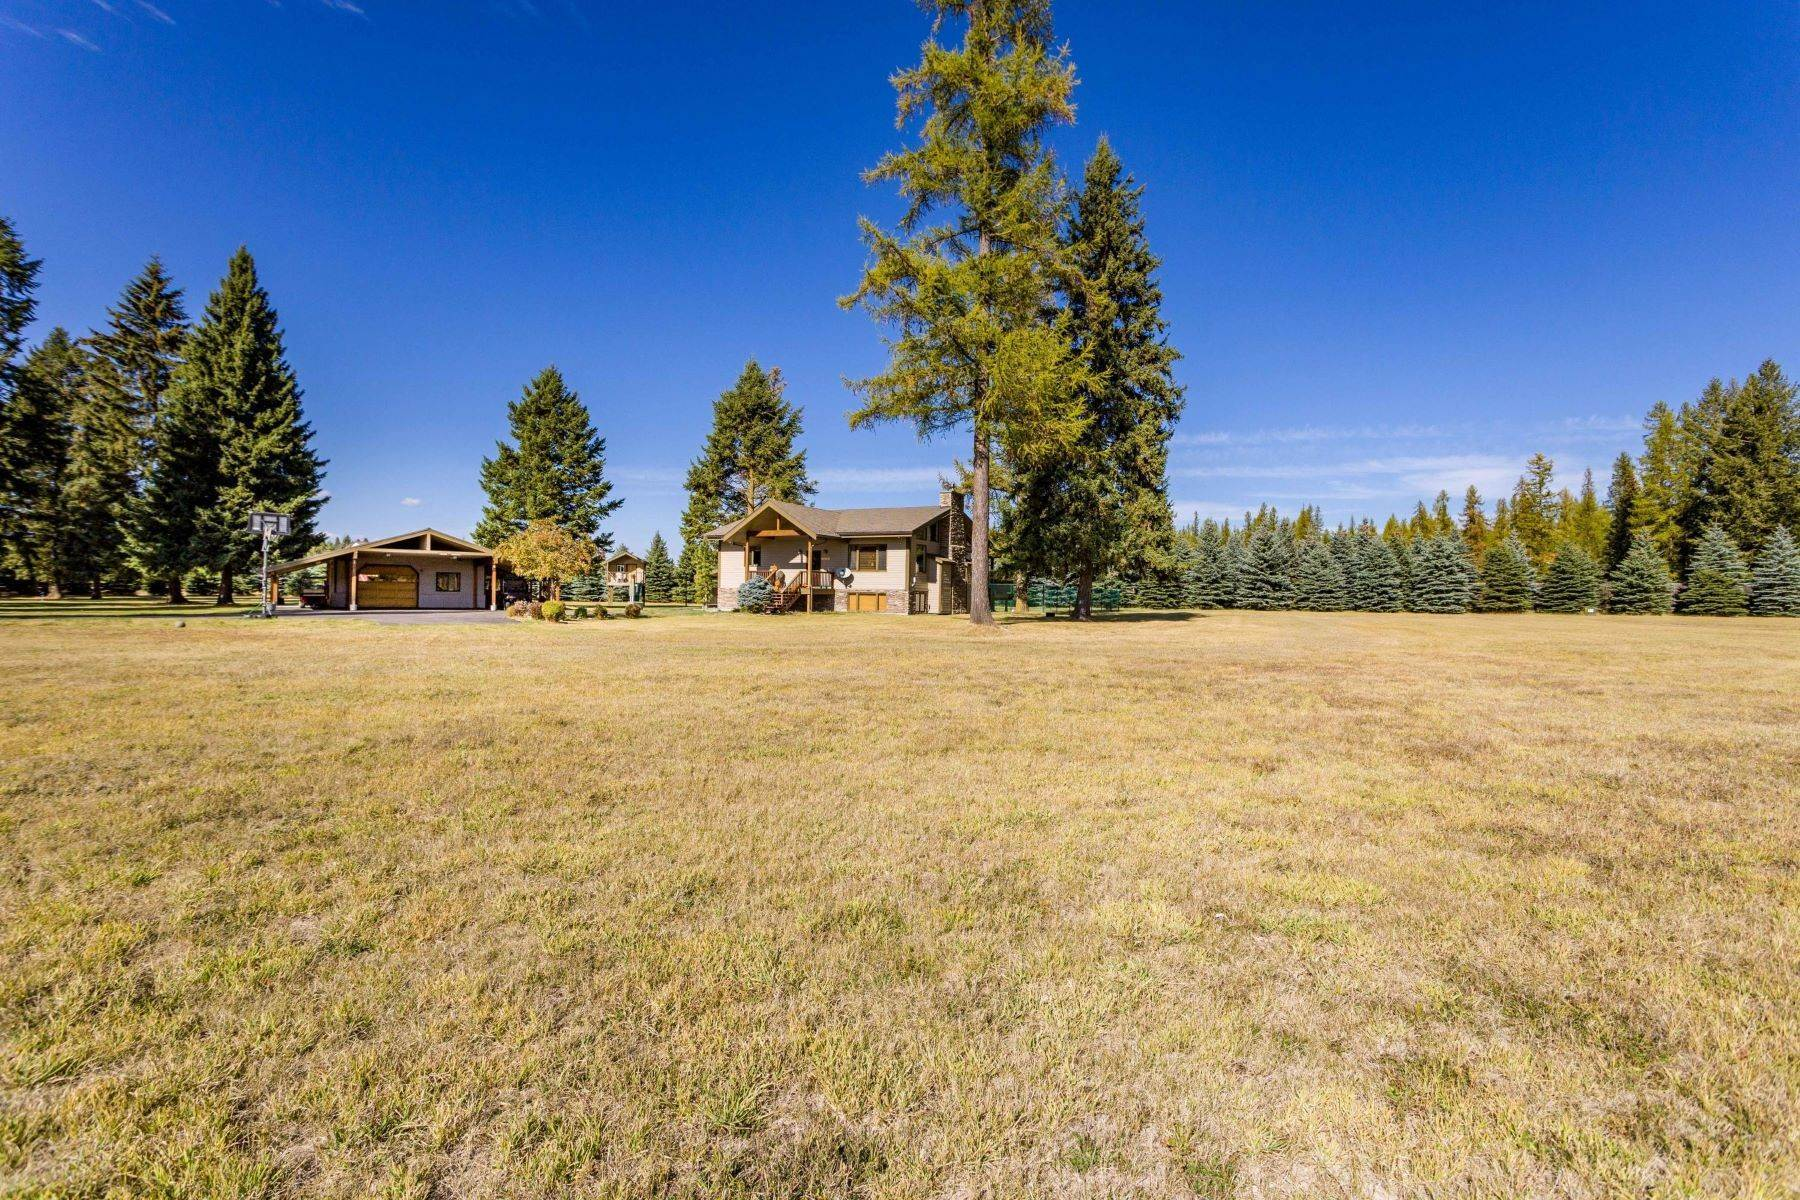 9. Land for Sale at Northwest Montana Forest, Meadows and Ponds 295 Garland Lane Whitefish, Montana 59937 United States